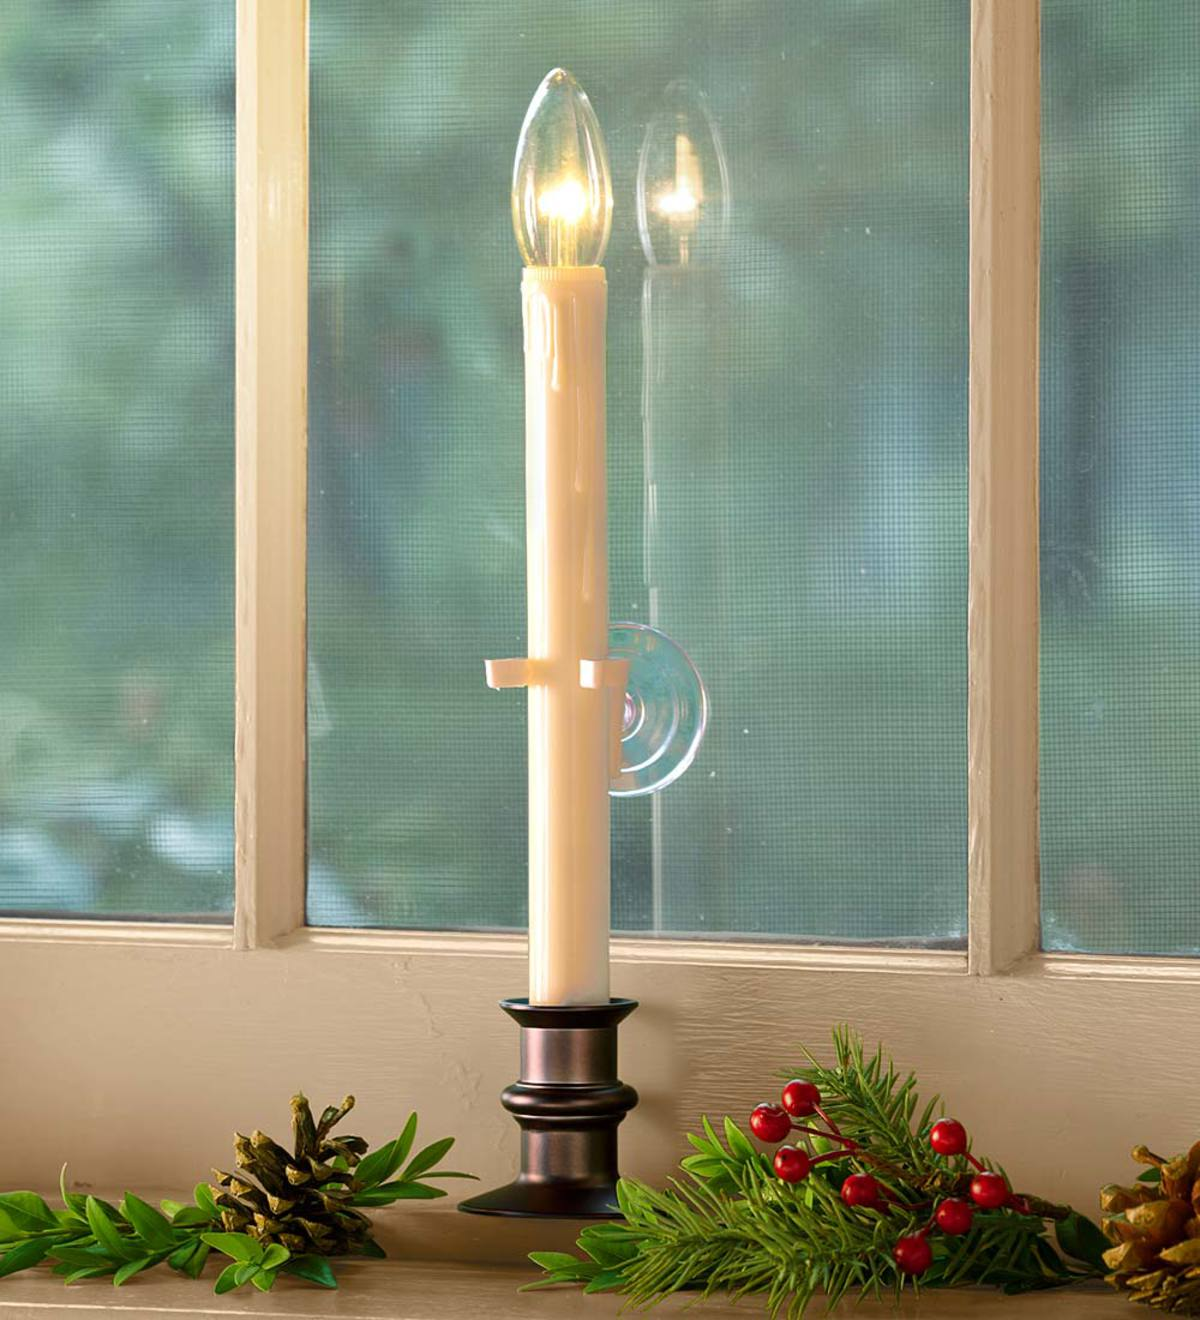 Suction Cup Window Candle with Auto Timer